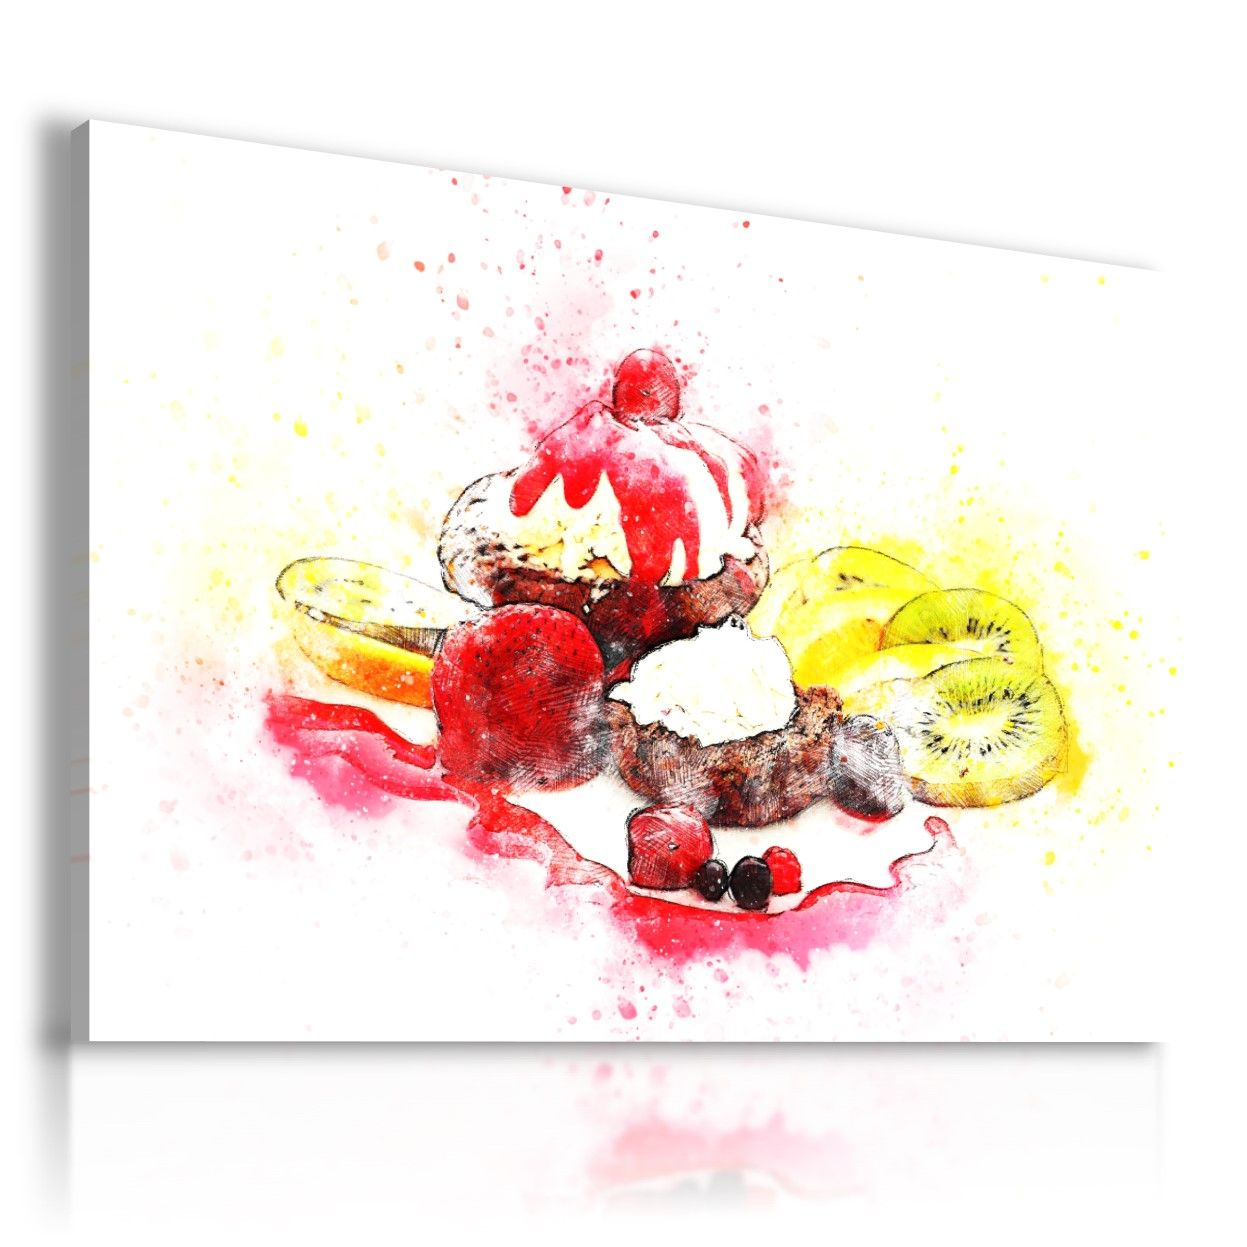 PAINTING DRAWING DESSERT ICE CREAMS PRINT Canvas Wall Art Picture R60 MATAGA